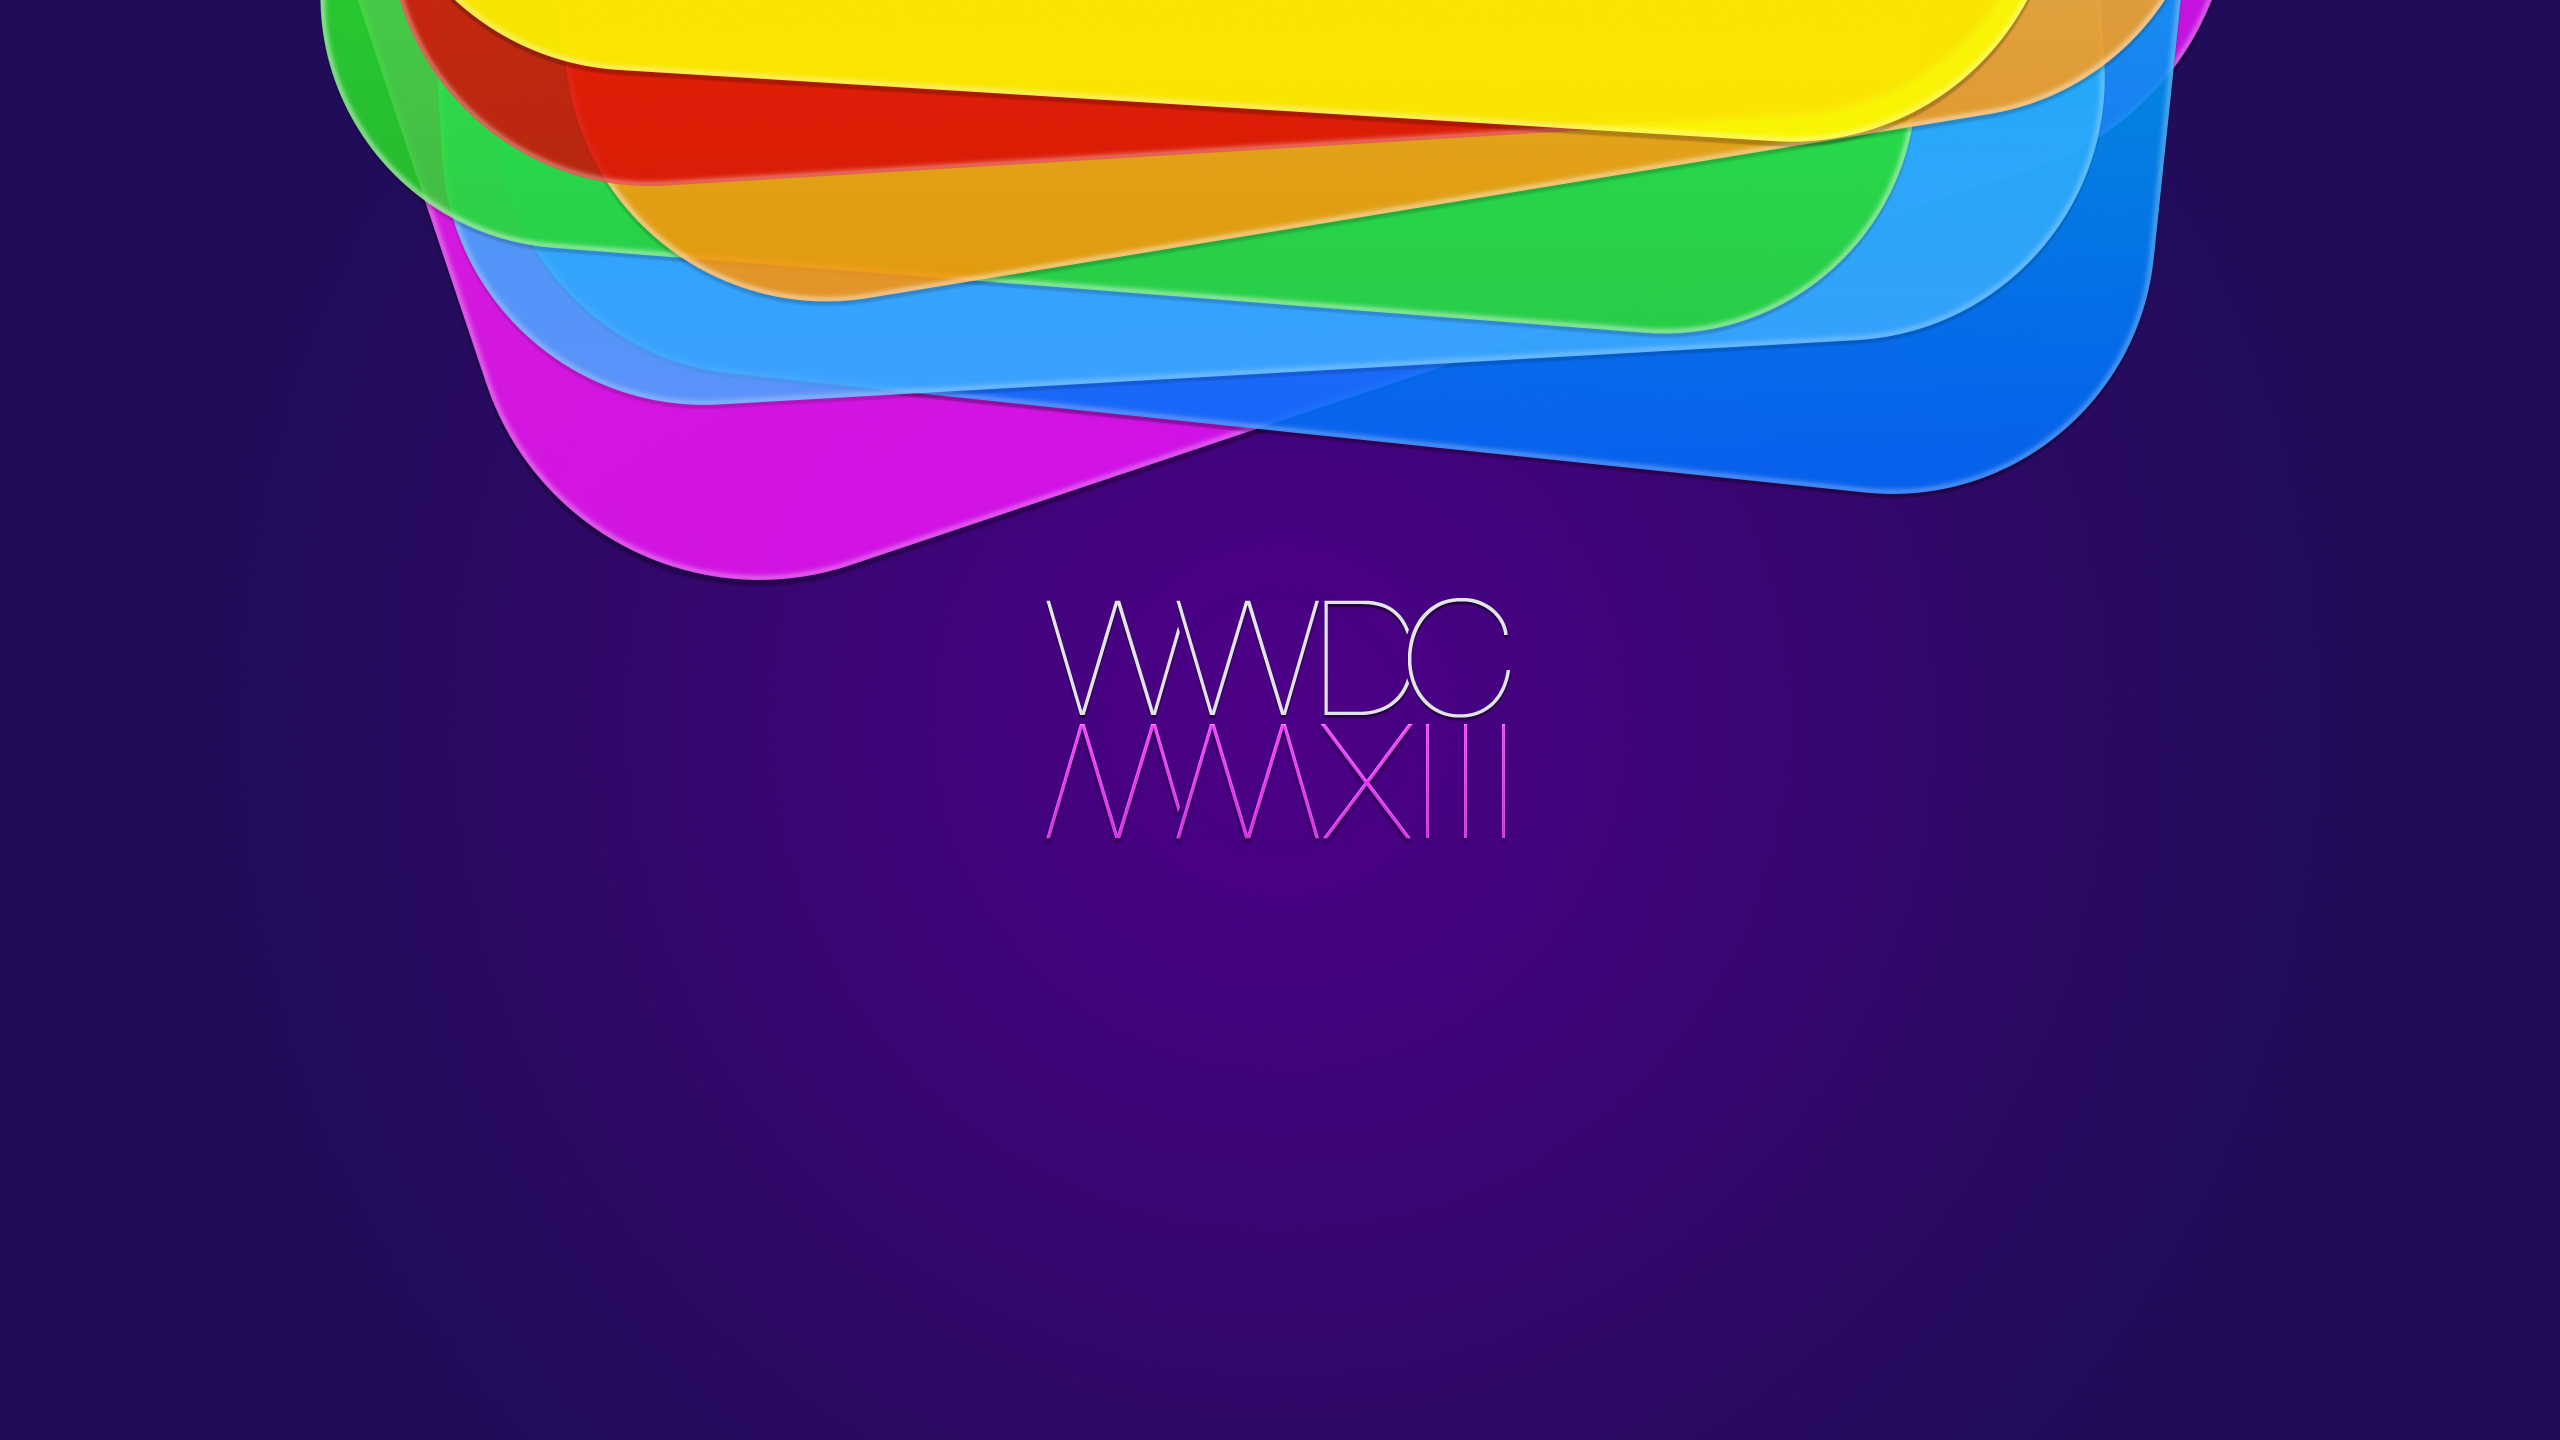 Schöne WWDC 2013 Wallpapers